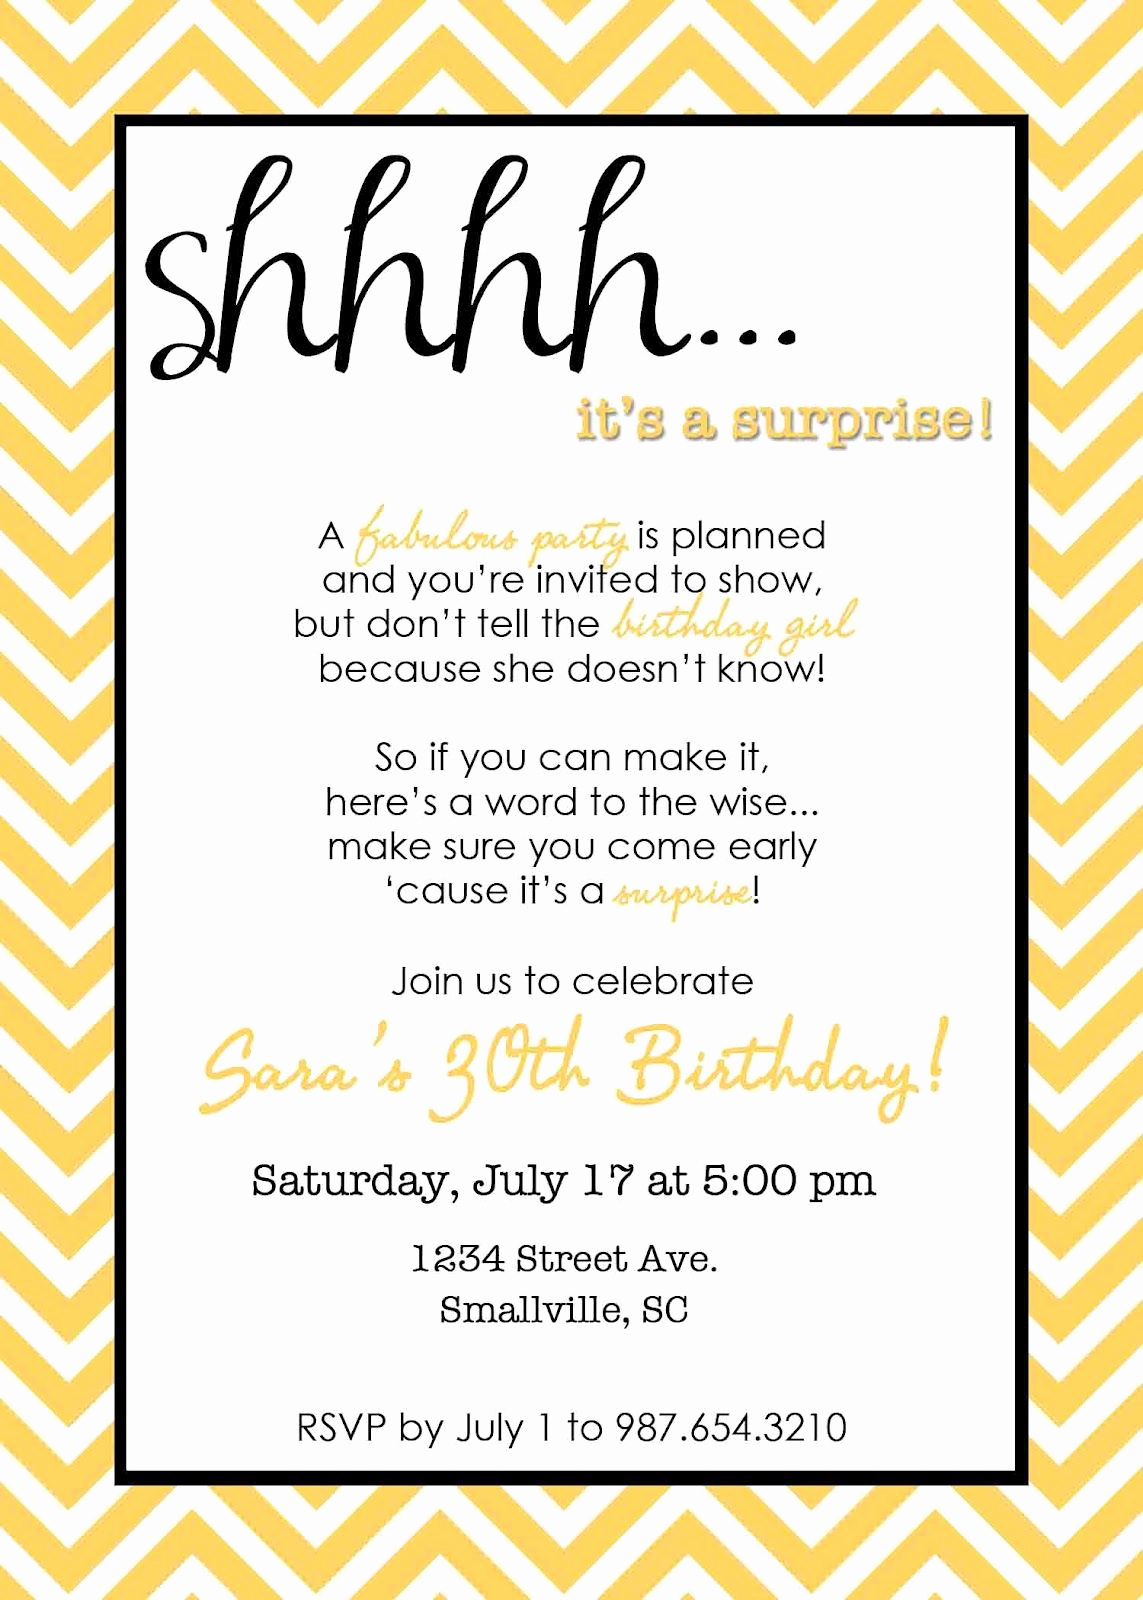 Suprise Party Invitation Wording Best Of Wording for Surprise Birthday Party